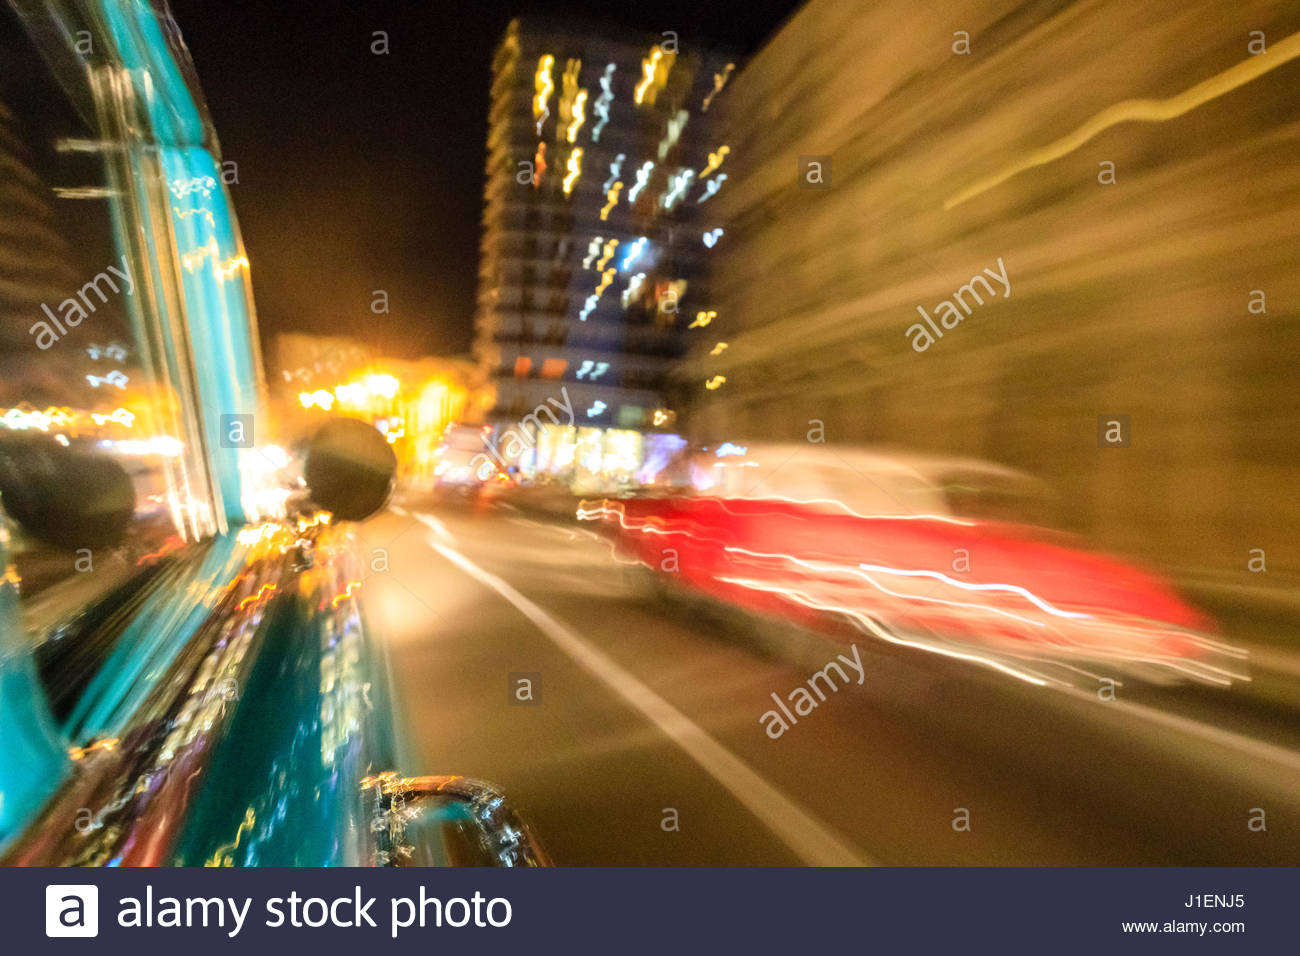 Motion blur of classic American cars cruising at night in Old Havana. - Stock Image